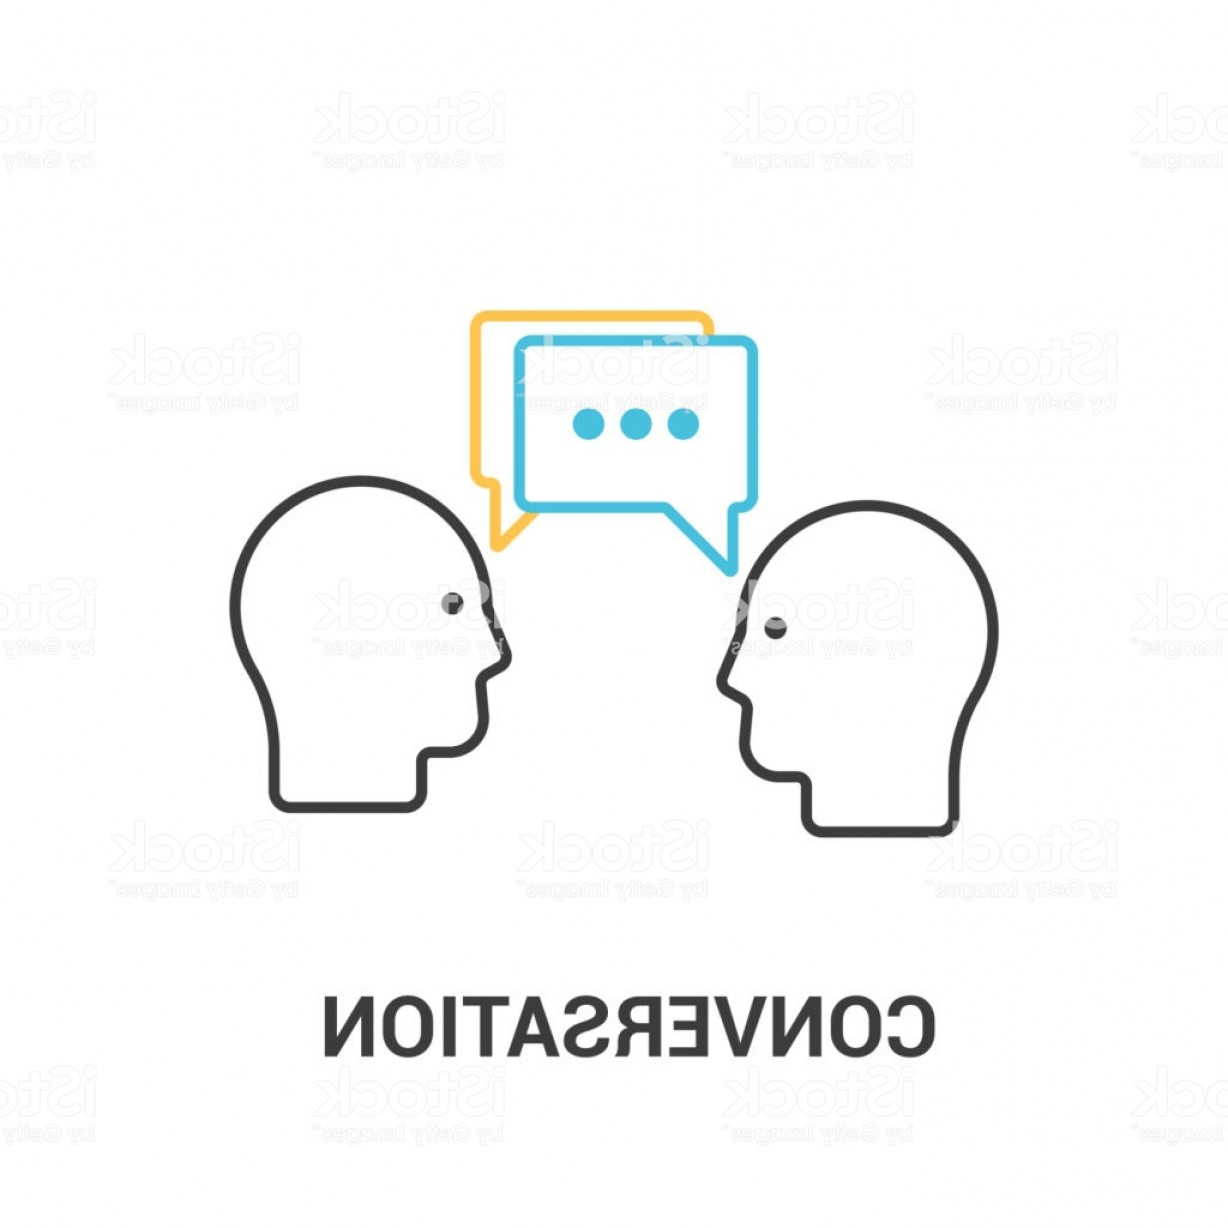 Two People Talking Vector Art: Conversation Concept Vector Illustration In Flat Line Style Two People Talking Gm